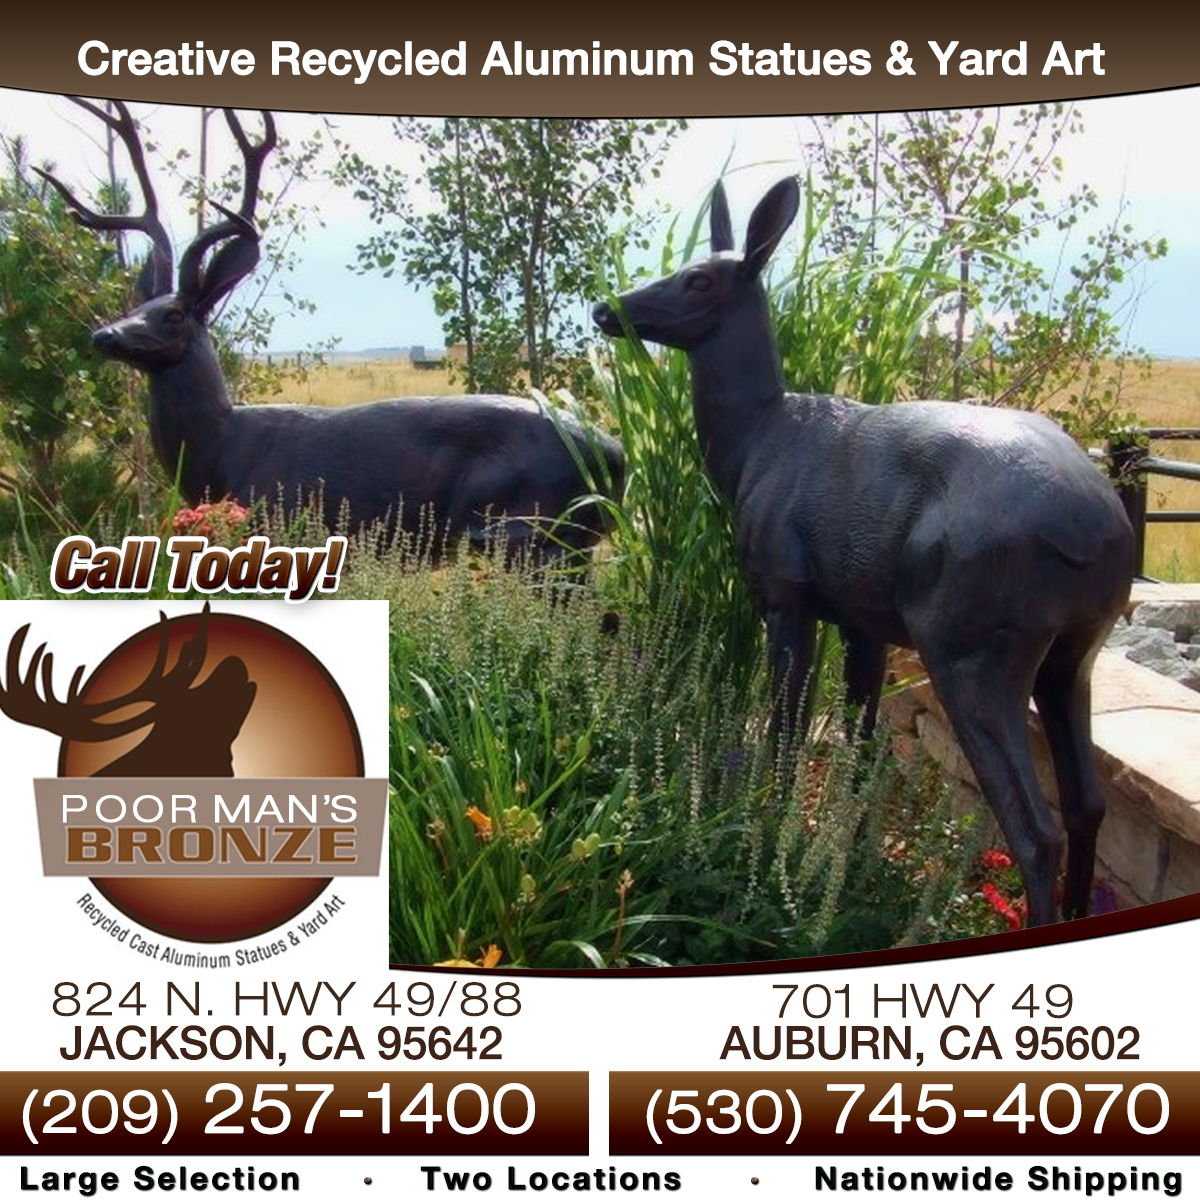 Unique bronze garden statues and yard art for sale by Poor Mans Bronze.